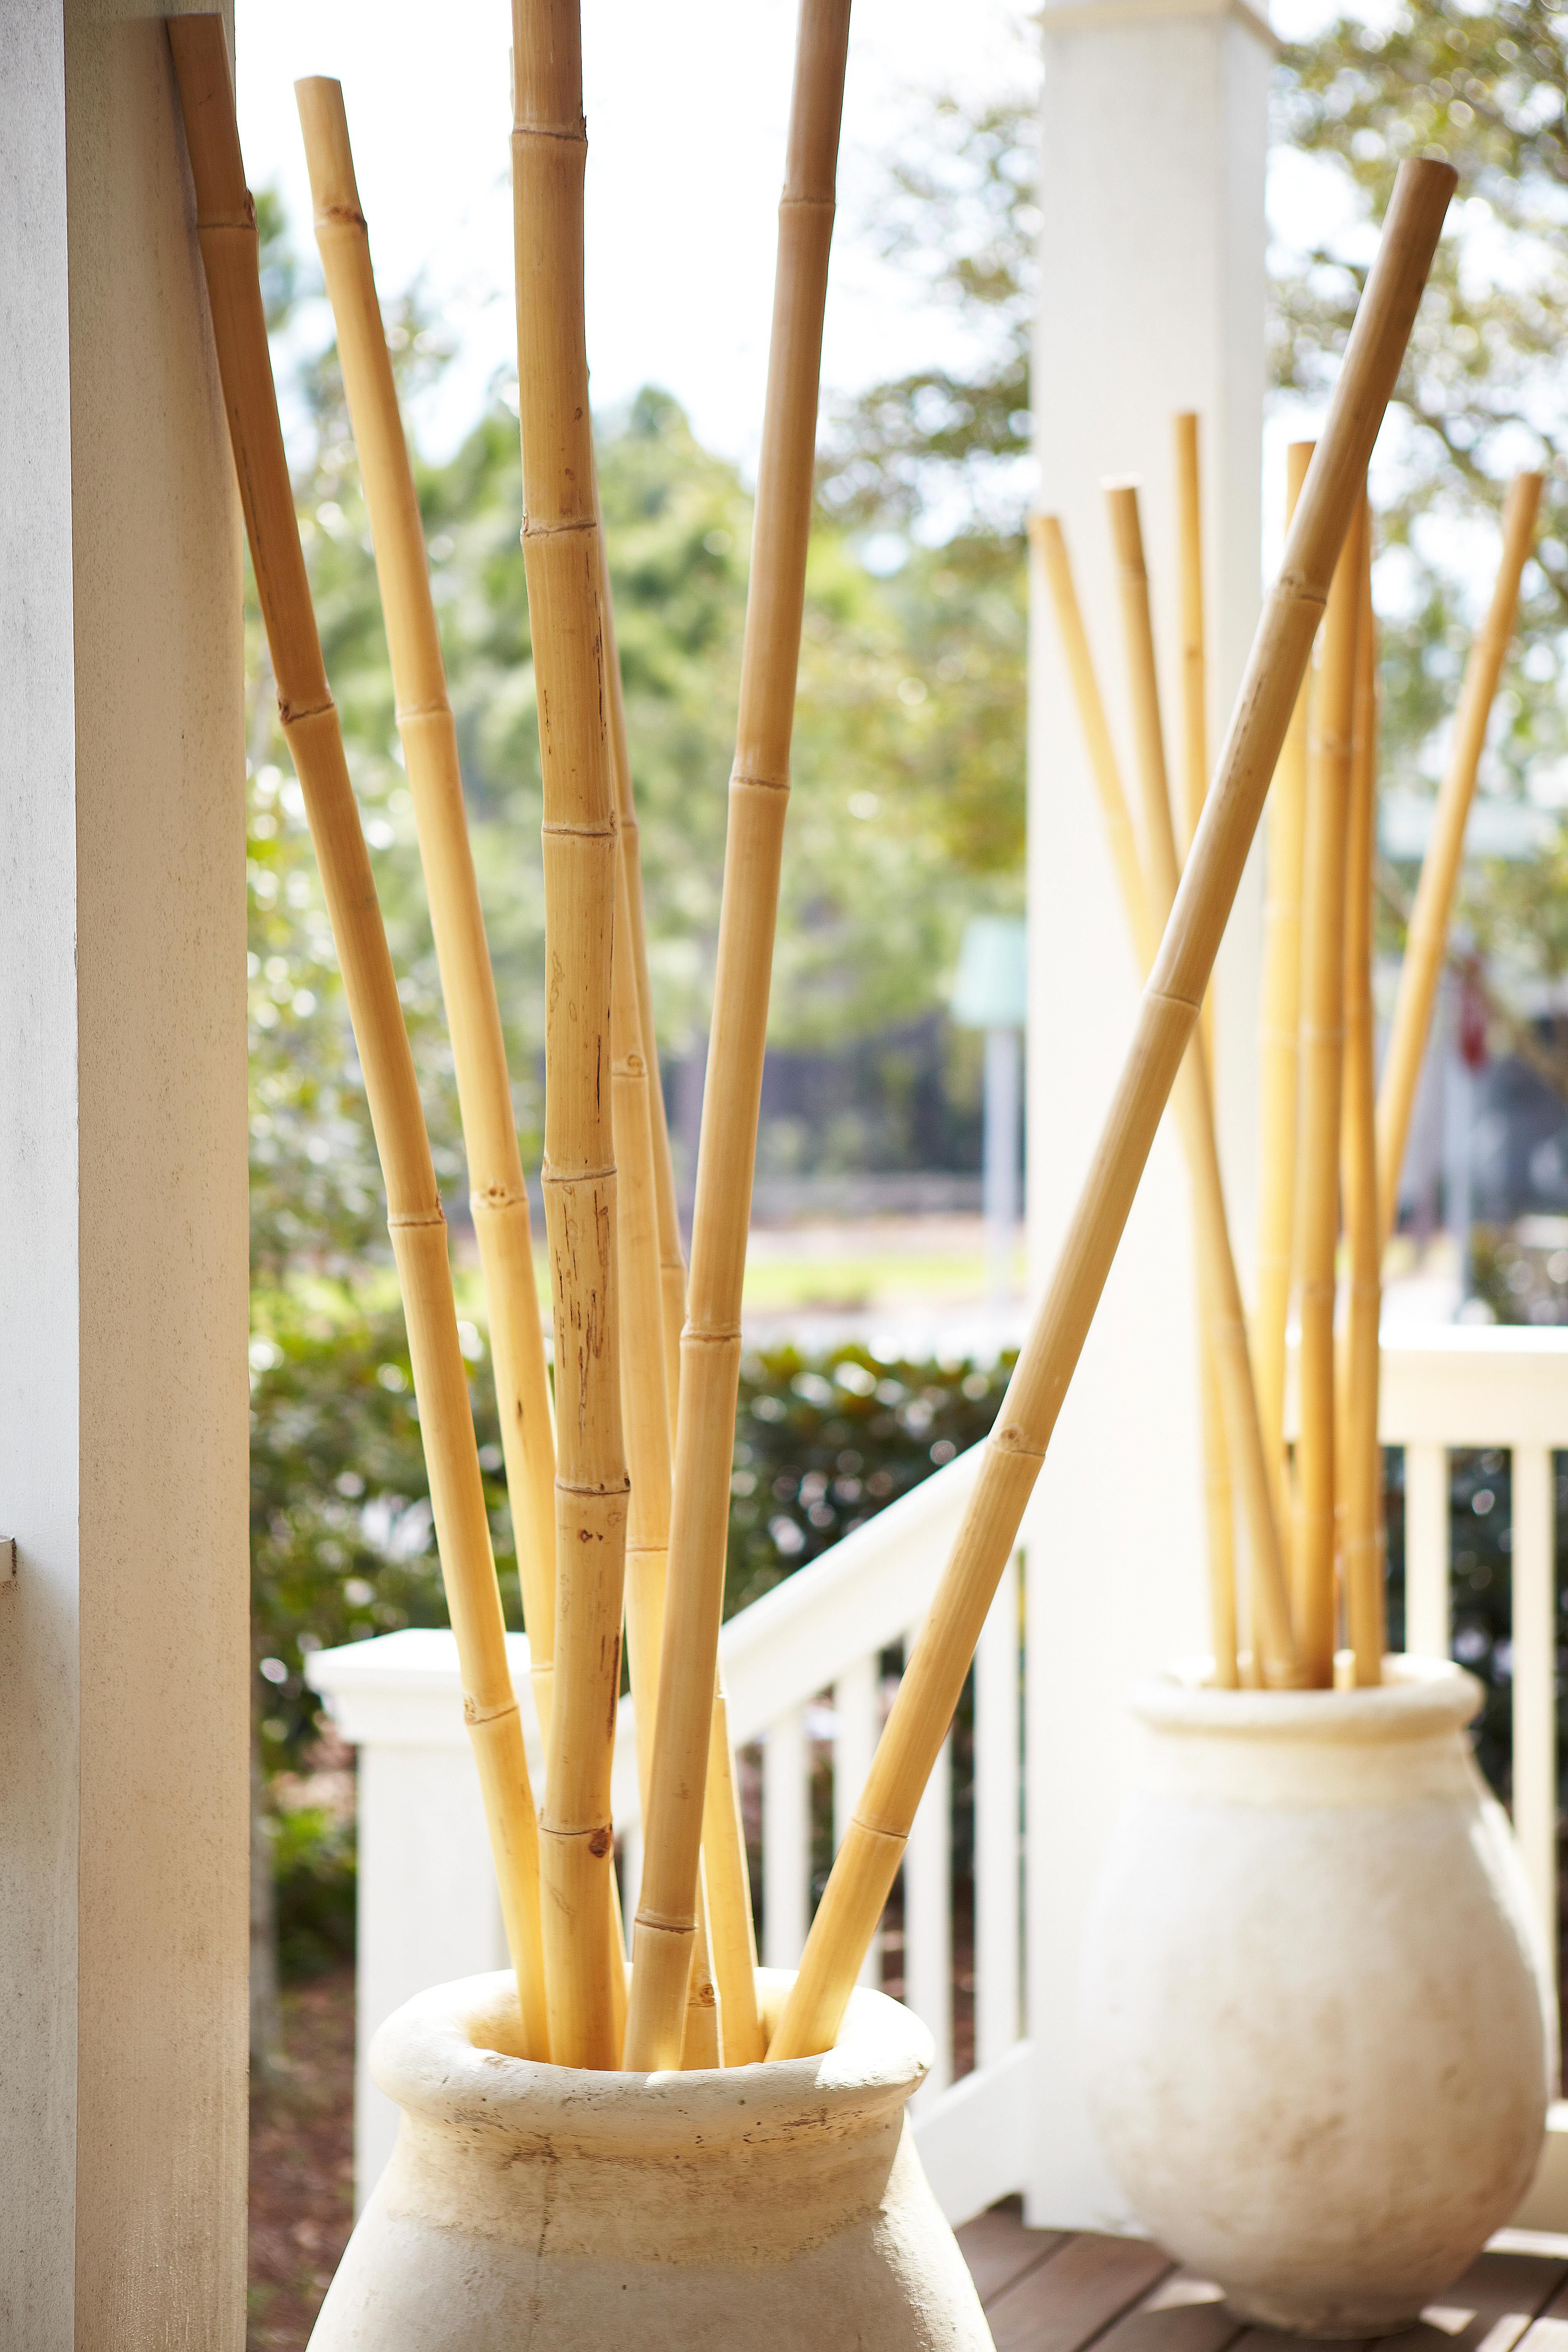 French Style Outdoor Pots with Bamboo | Beach House Project ...